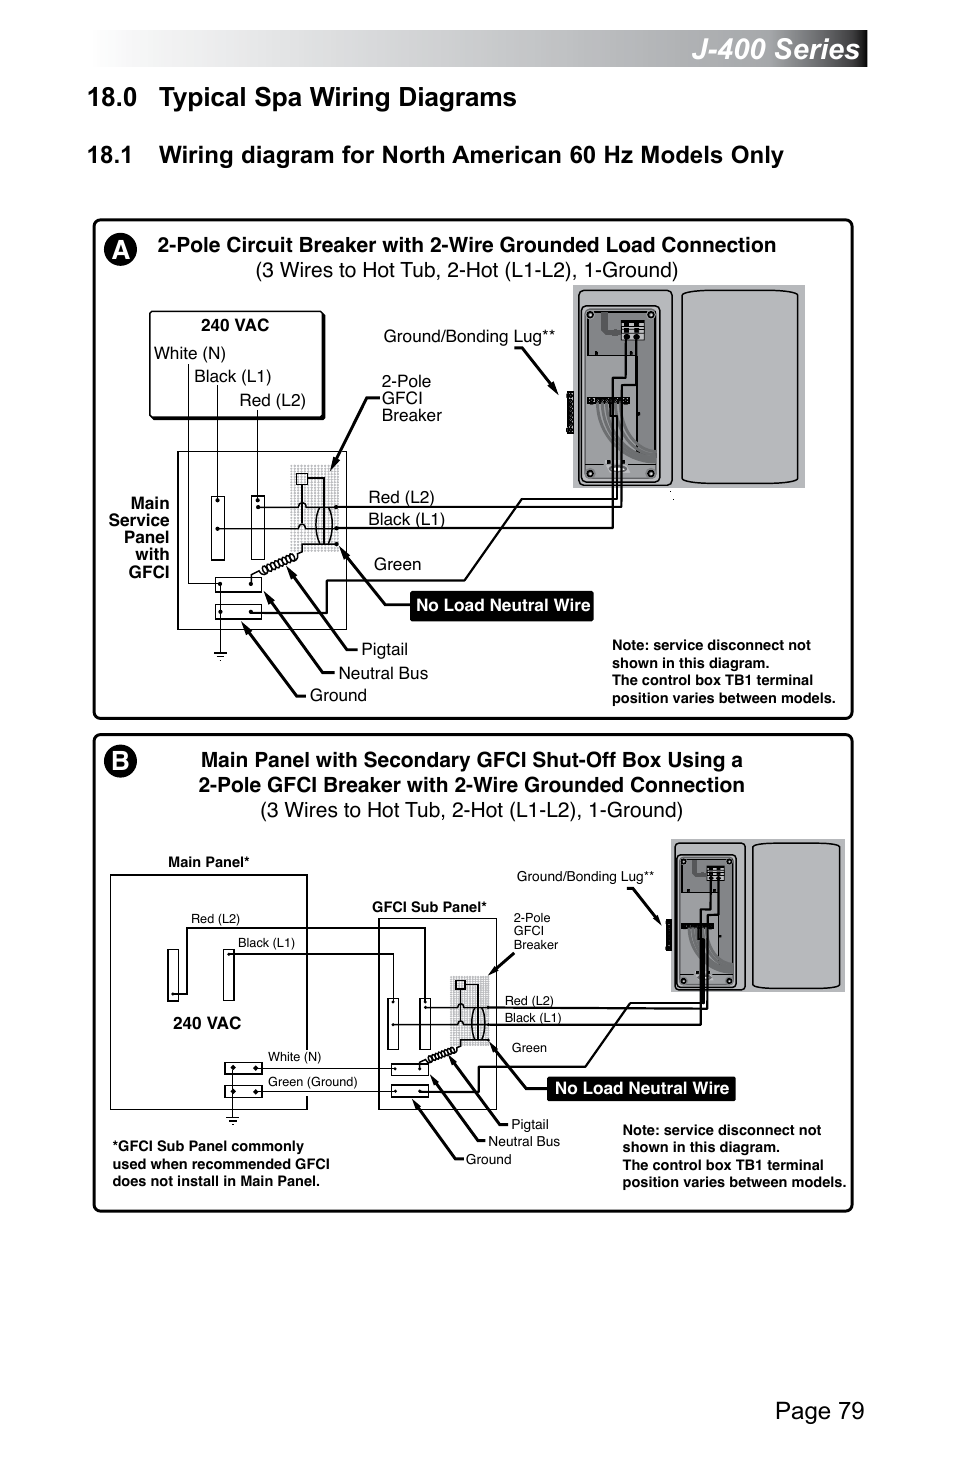 jacuzzi j 470 page85 0 typical spa wiring diagrams, j 400 series, page 79 jacuzzi j 2 pole breaker wiring diagram at bakdesigns.co